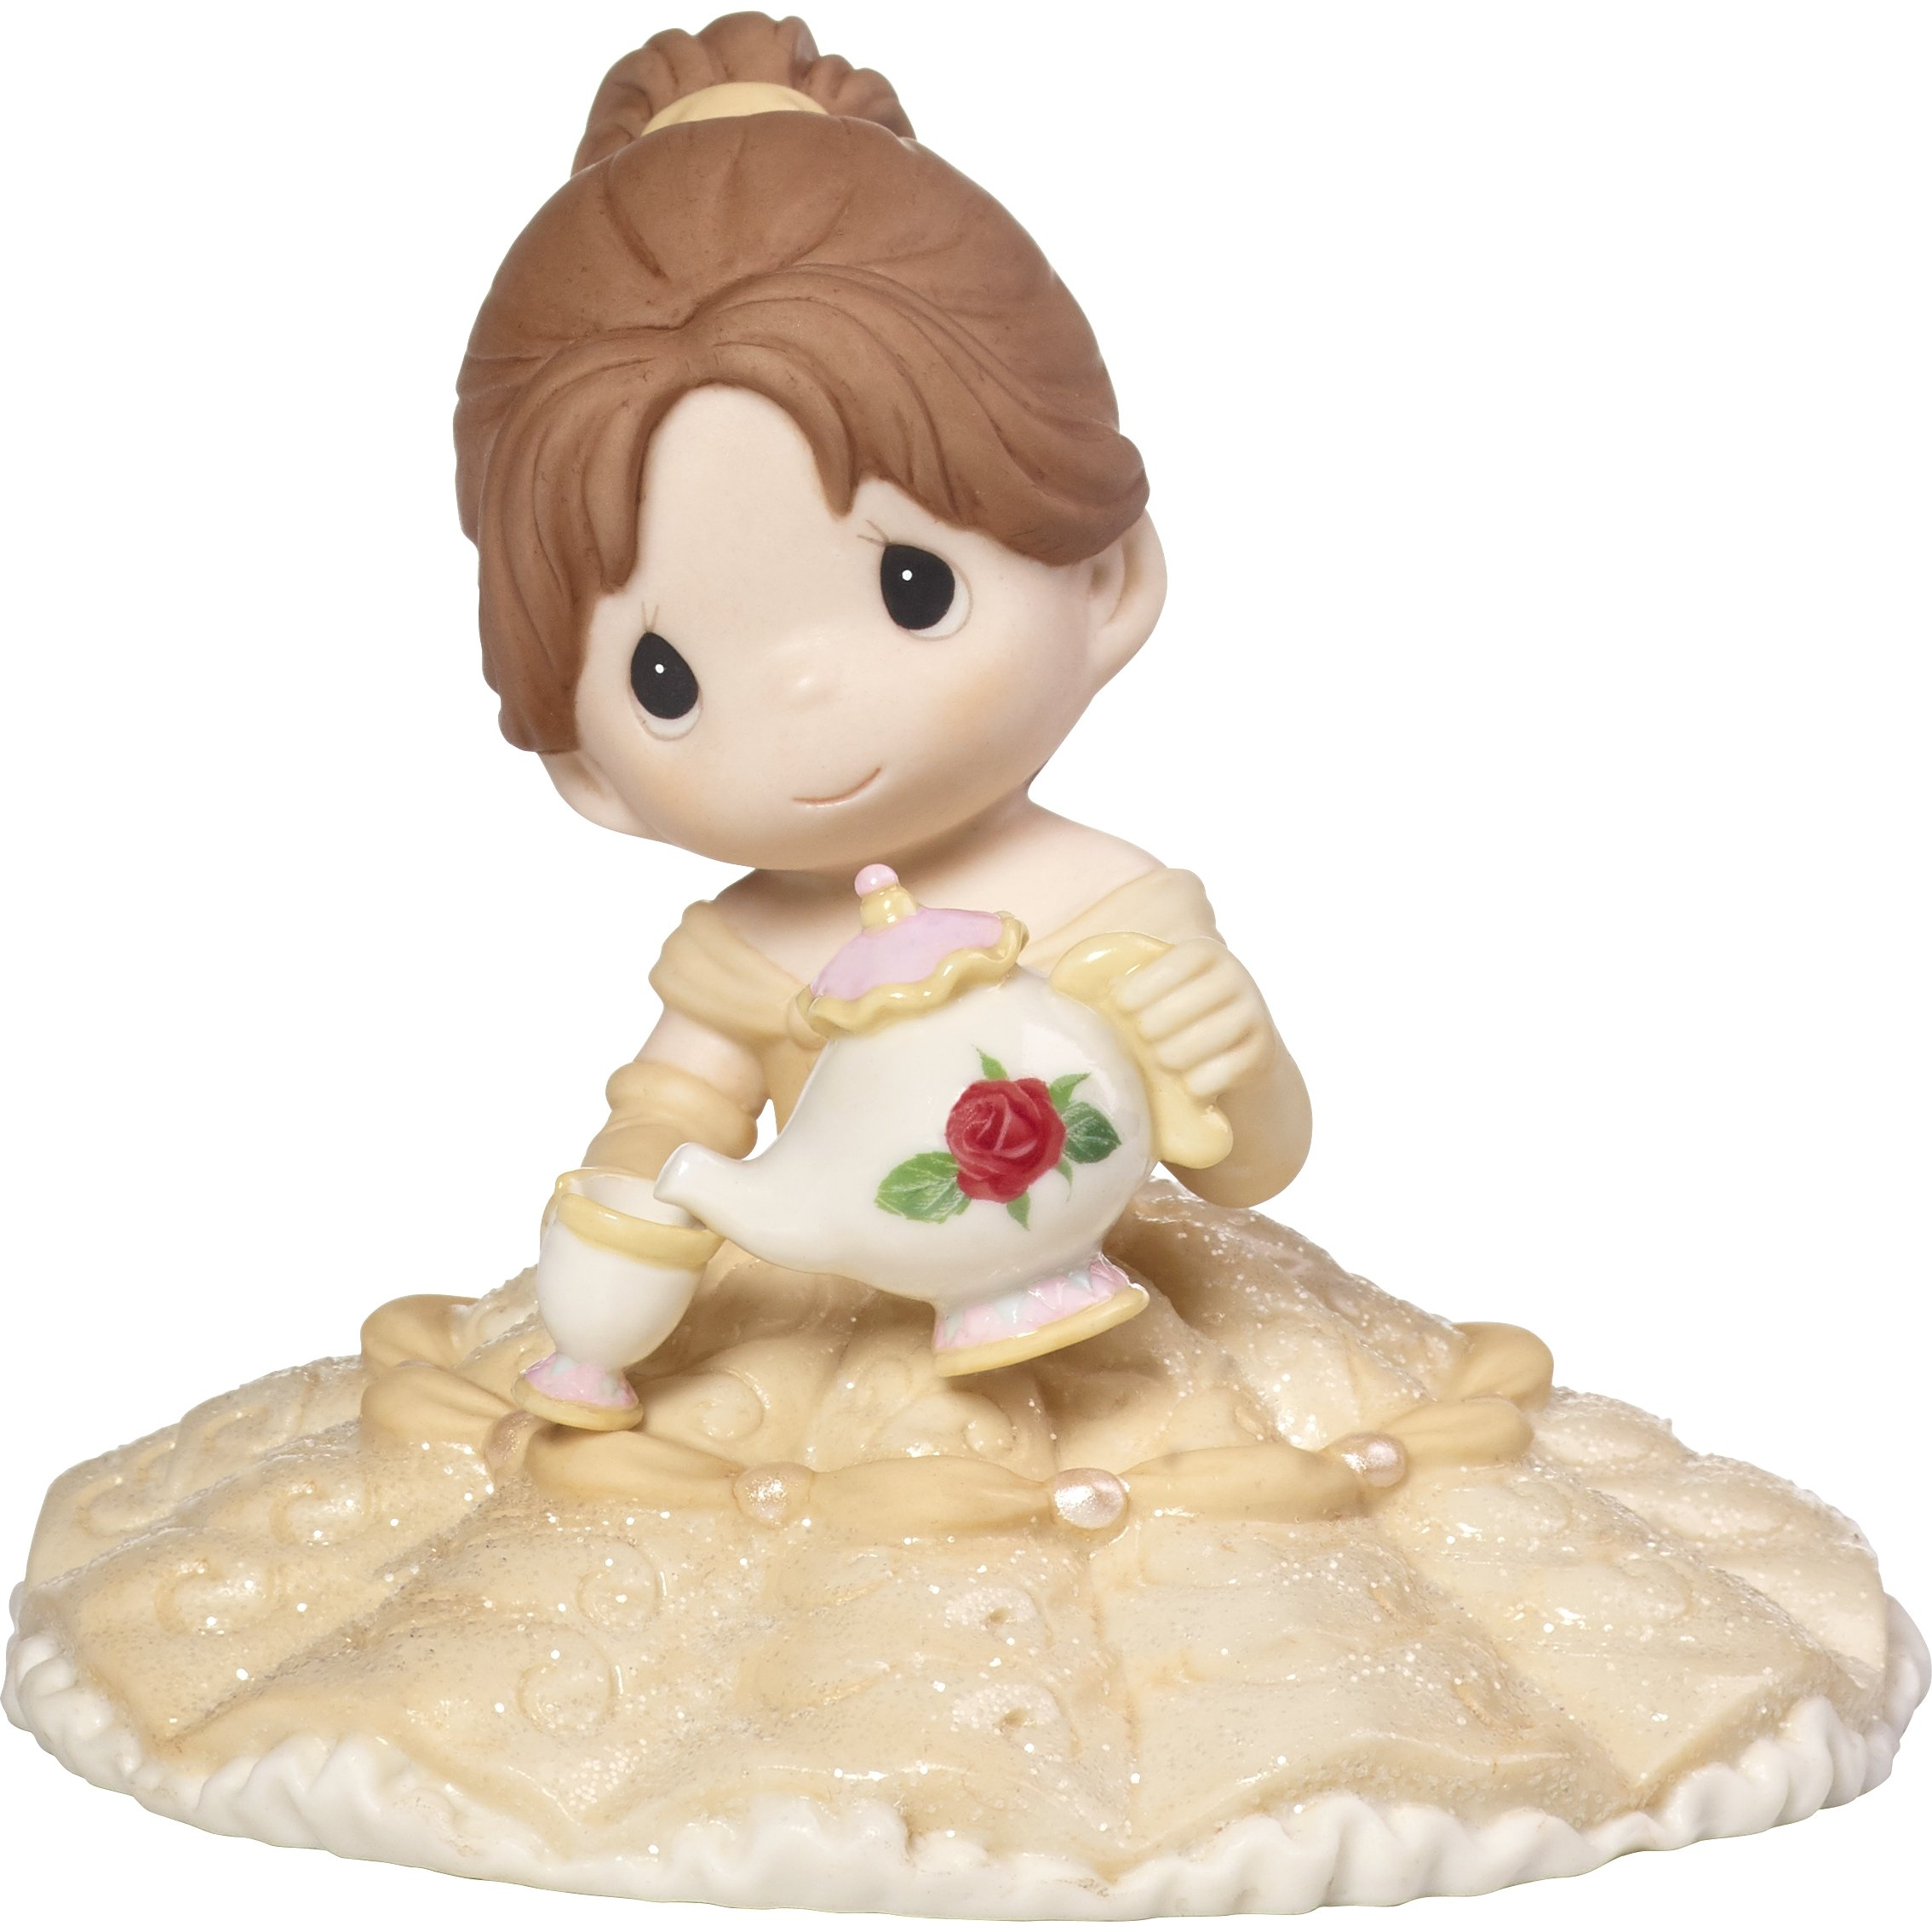 Precious Moments Disney Belle You're My Missing Piece Poreclain Figurine or Cake Topper 173092